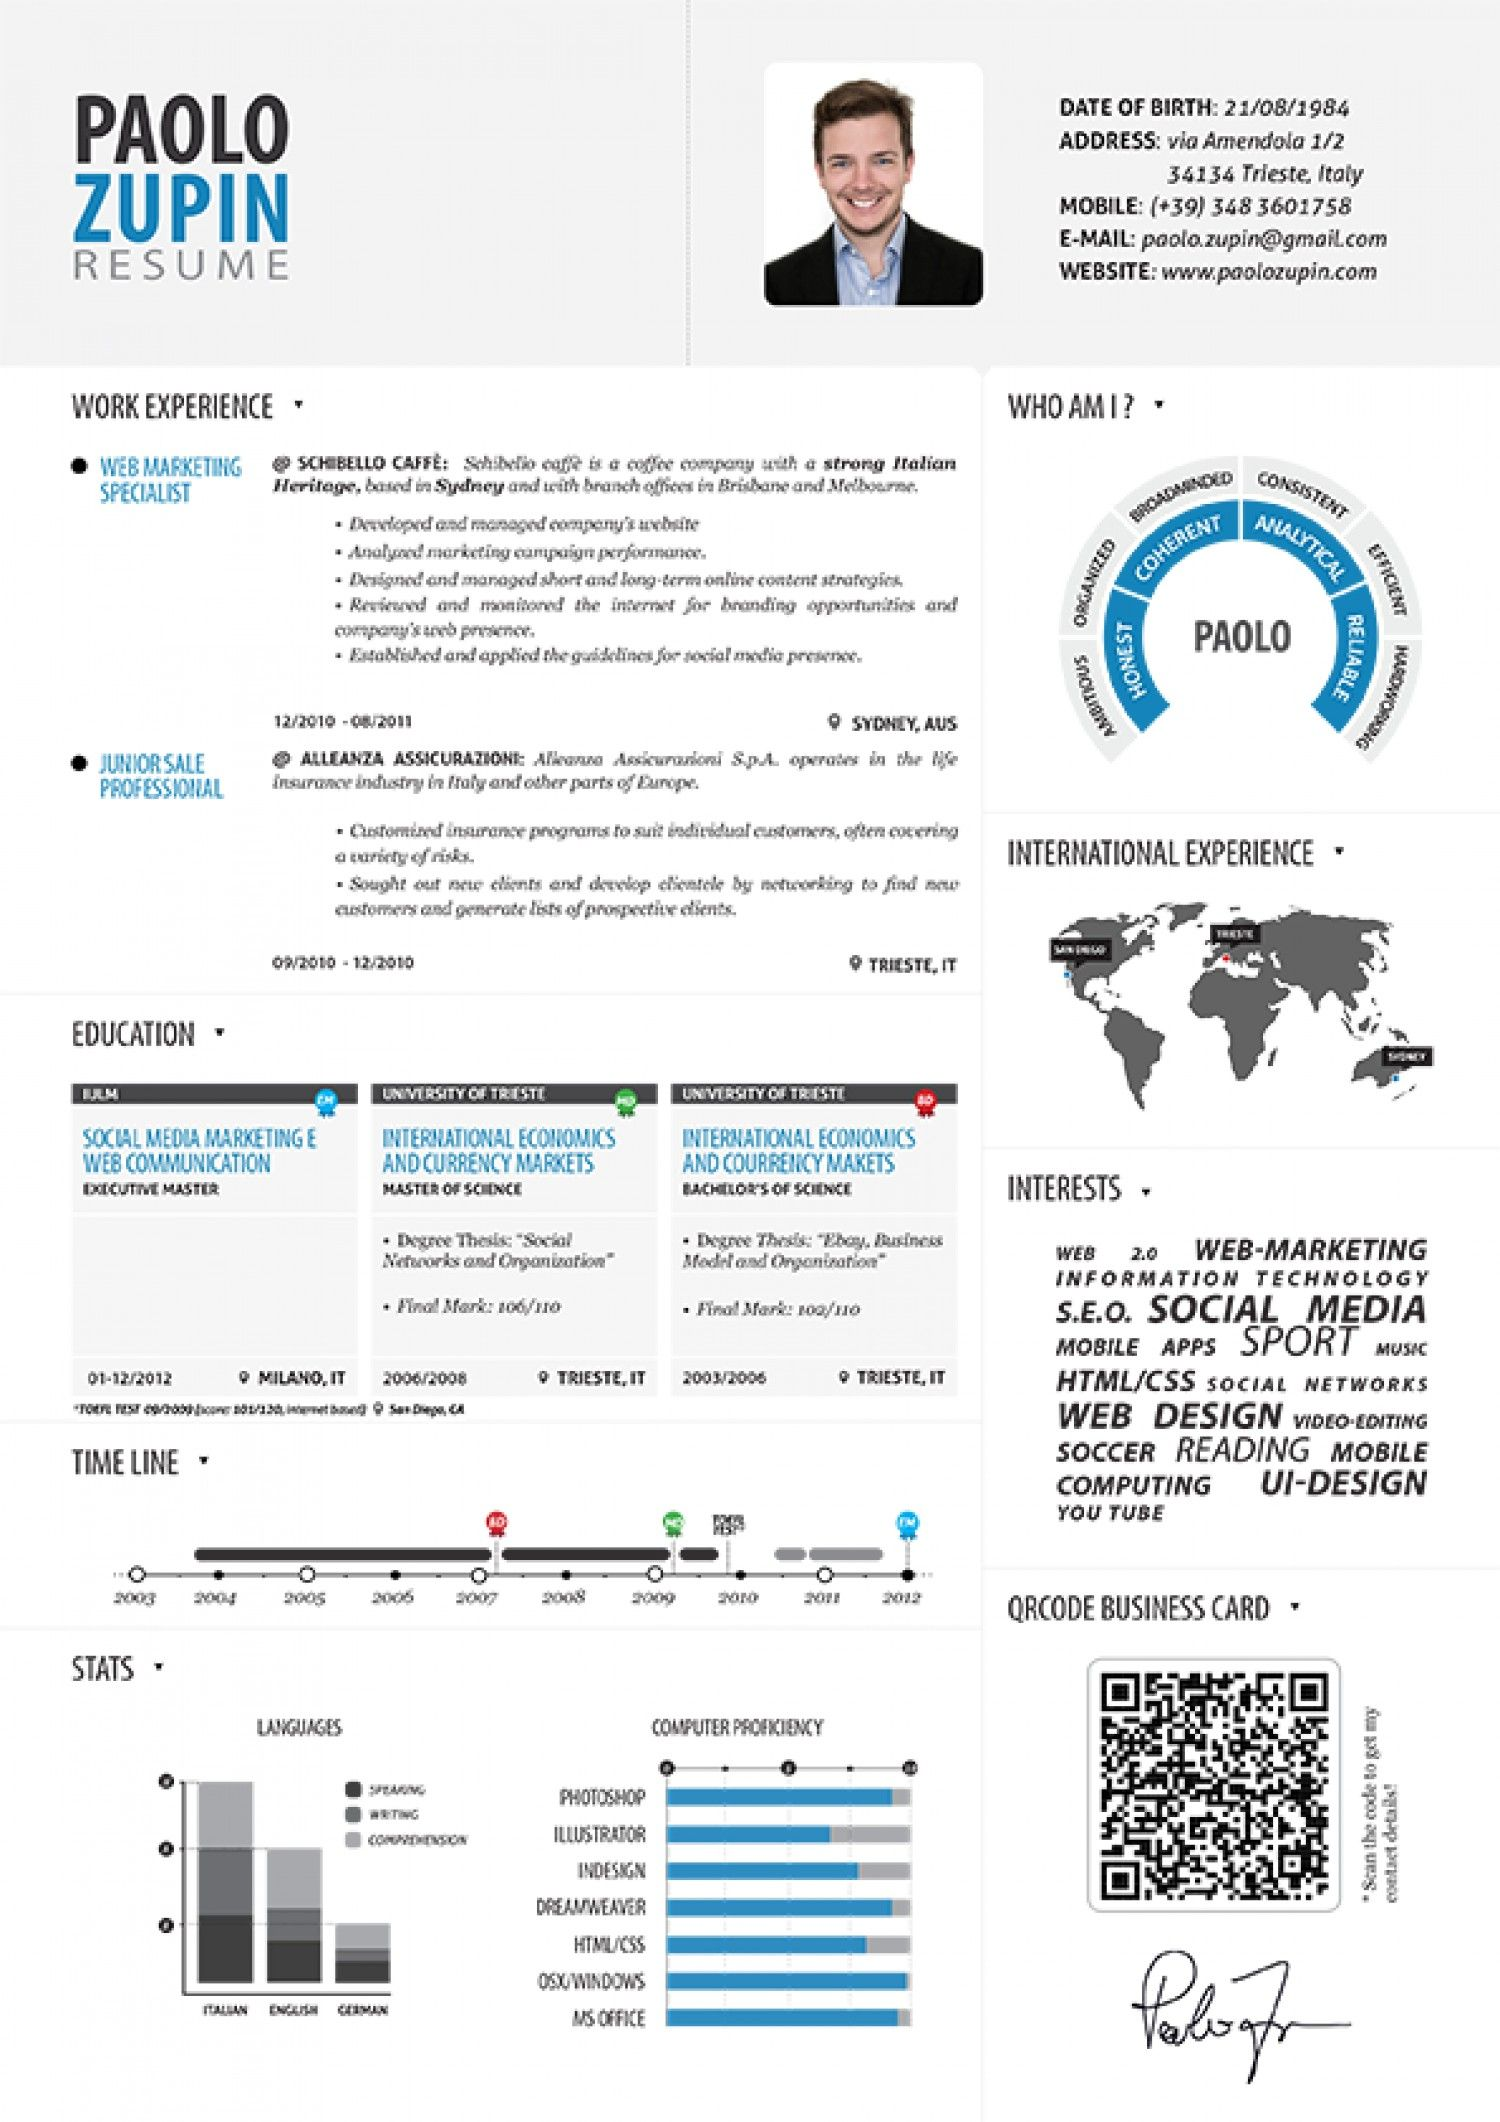 Opposenewapstandardsus  Mesmerizing  Images About Resume  Cv Design On Pinterest  Infographic  With Magnificent  Images About Resume  Cv Design On Pinterest  Infographic Resume Resume And Resume Design With Captivating Resume Writers Wanted Also Skills Section Resume Examples In Addition Resume Postings And Email A Resume As Well As Hr Consultant Resume Additionally Actors Resumes From Pinterestcom With Opposenewapstandardsus  Magnificent  Images About Resume  Cv Design On Pinterest  Infographic  With Captivating  Images About Resume  Cv Design On Pinterest  Infographic Resume Resume And Resume Design And Mesmerizing Resume Writers Wanted Also Skills Section Resume Examples In Addition Resume Postings From Pinterestcom